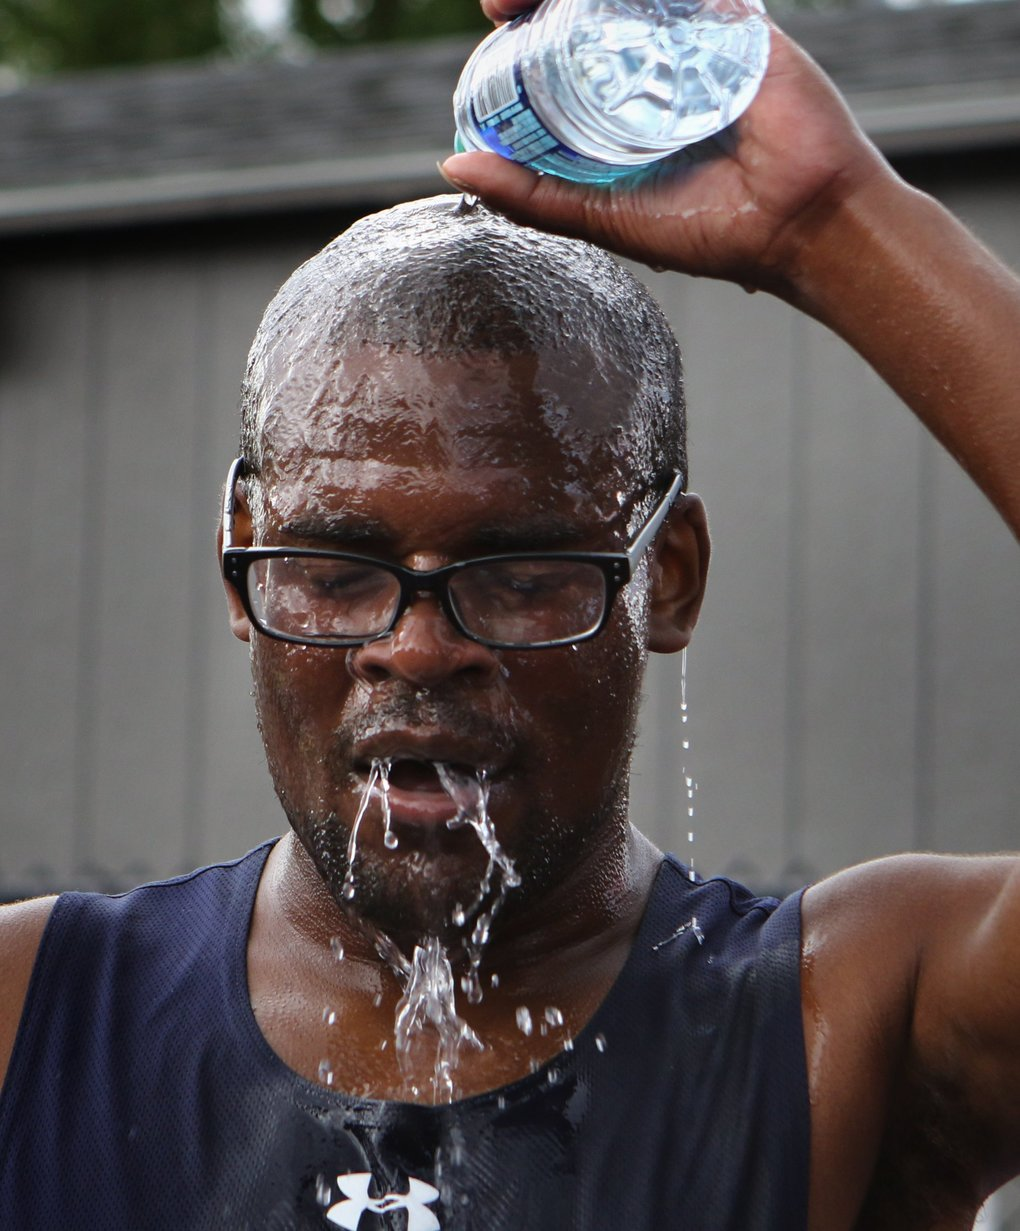 After placing second in the Special Olympics 5000M Run, Division M02, at the University of Washington, Andrew Peterson from Indiana douses himself in water Monday, July 2, 2018.  (Ellen M. Banner / The Seattle Times)